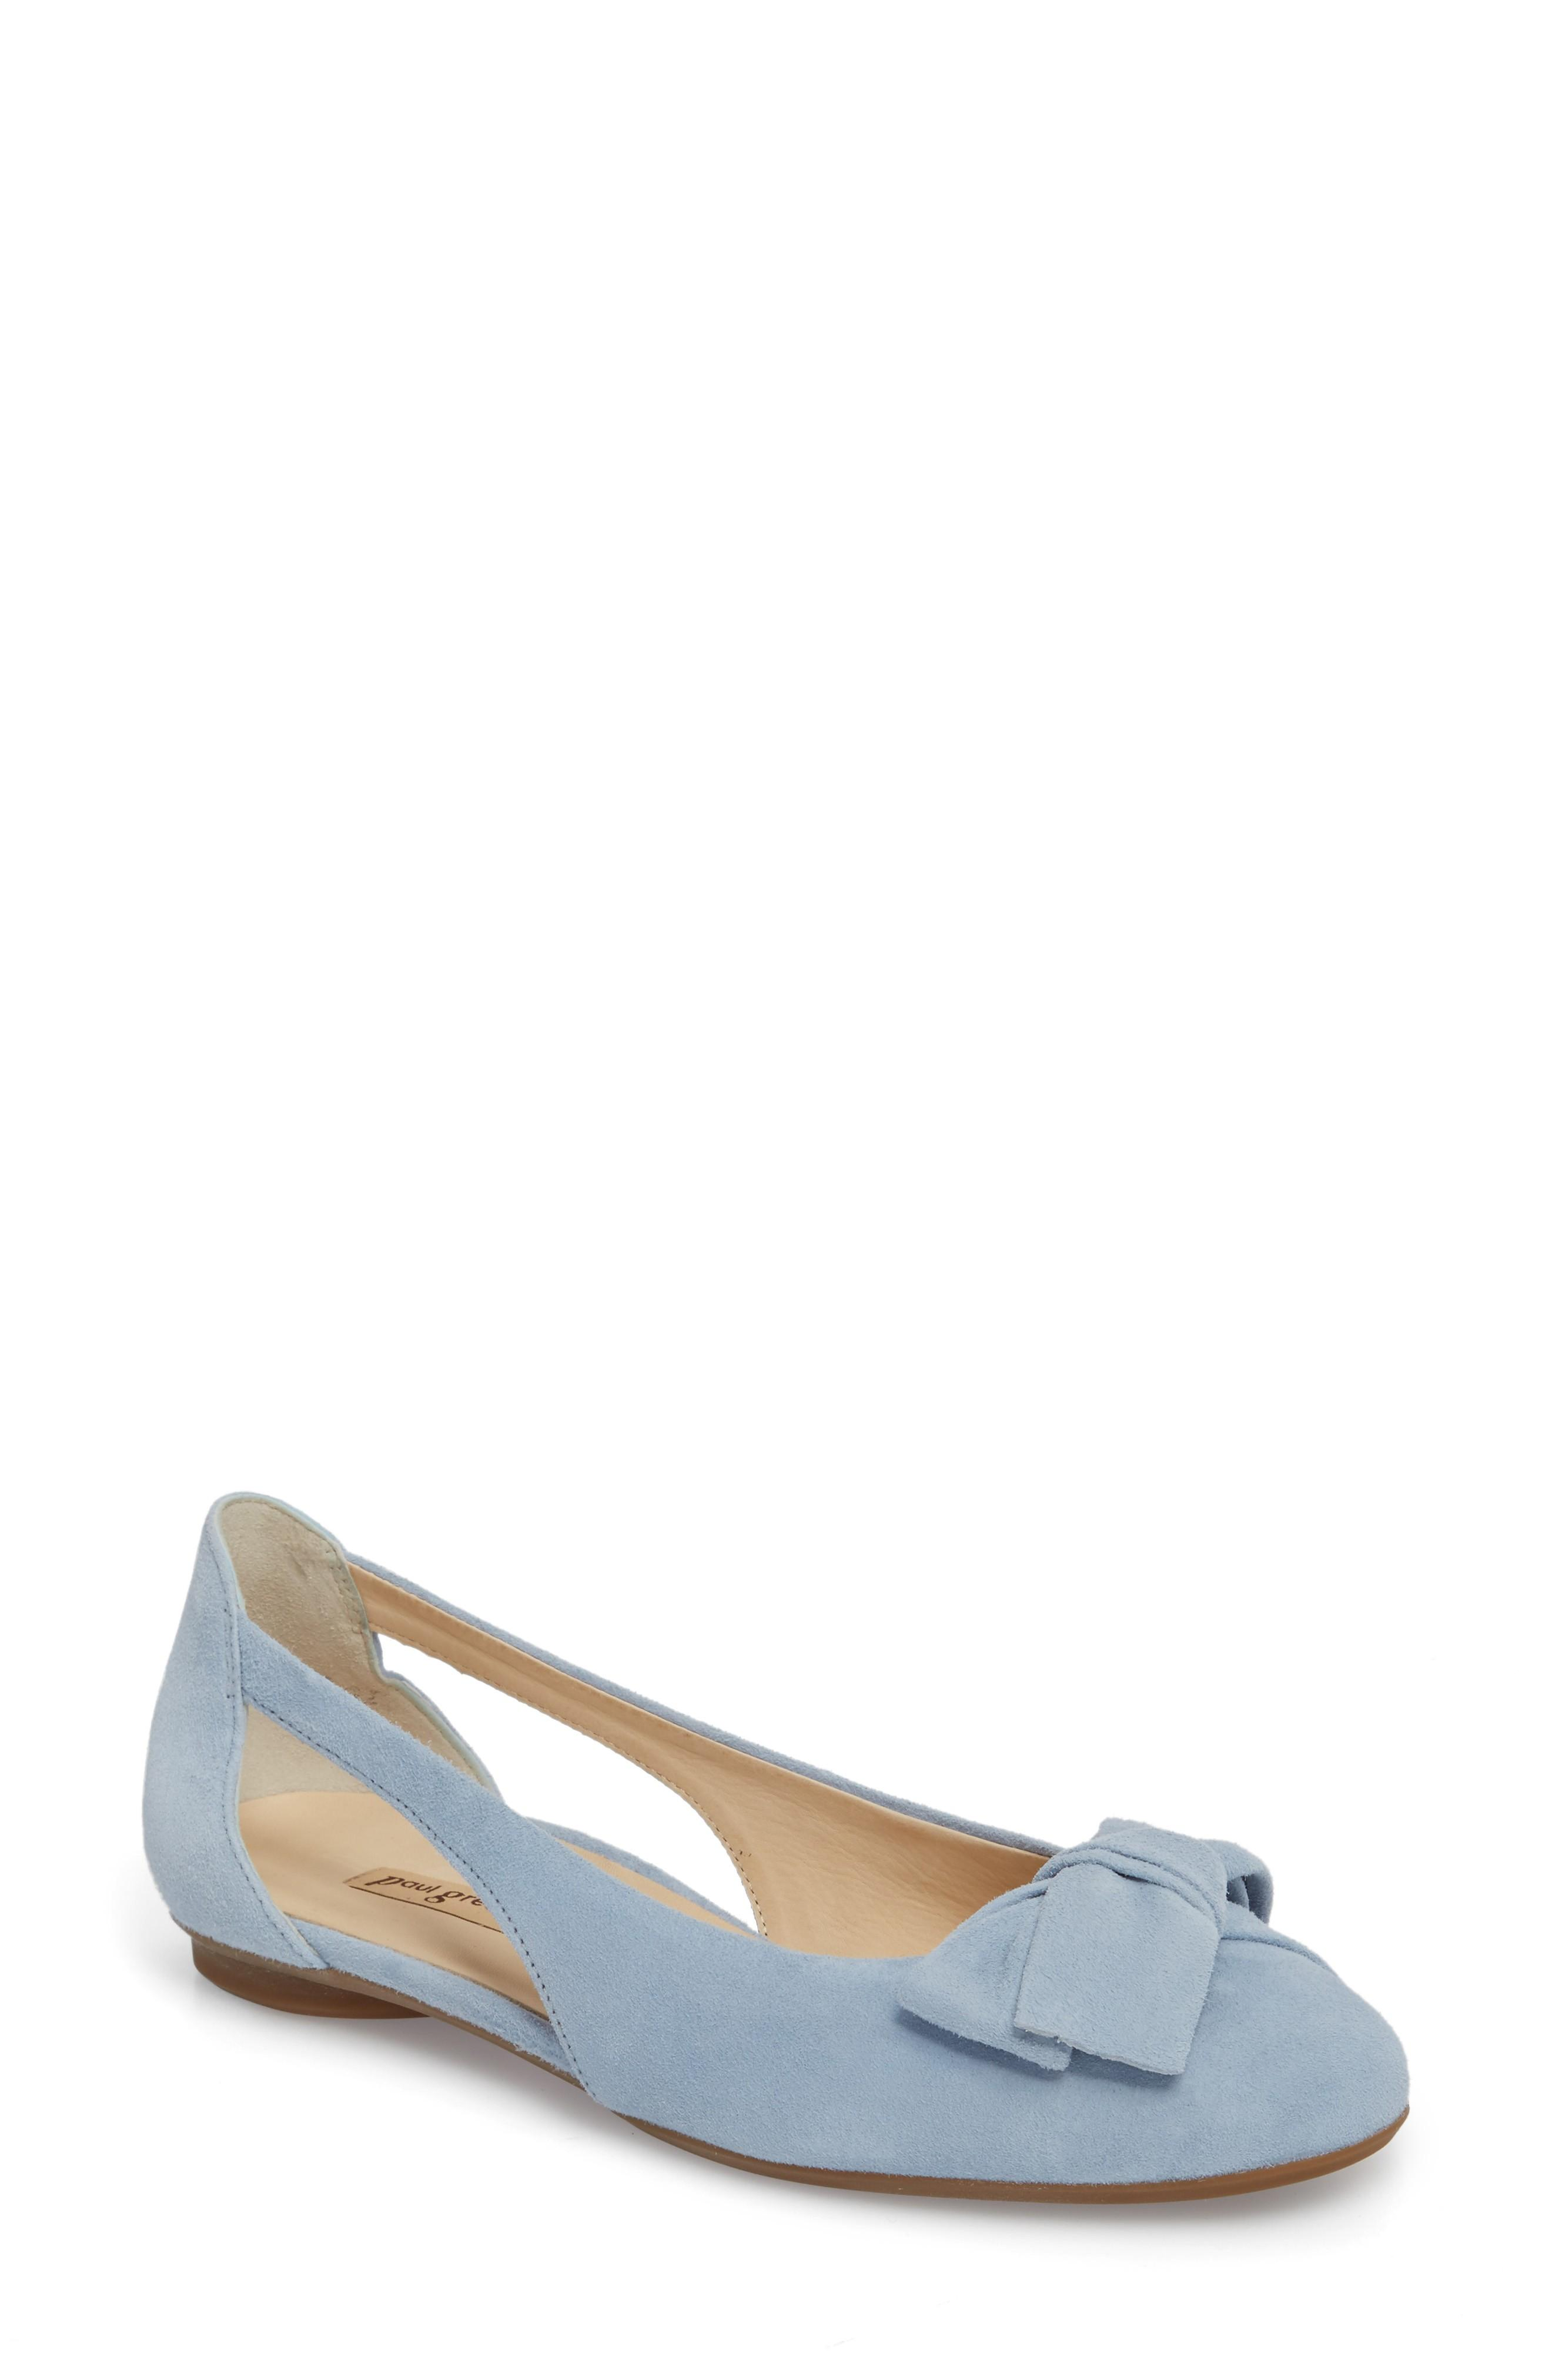 Paul Green Pacific Flat In Blue/ Blue Lago Suede